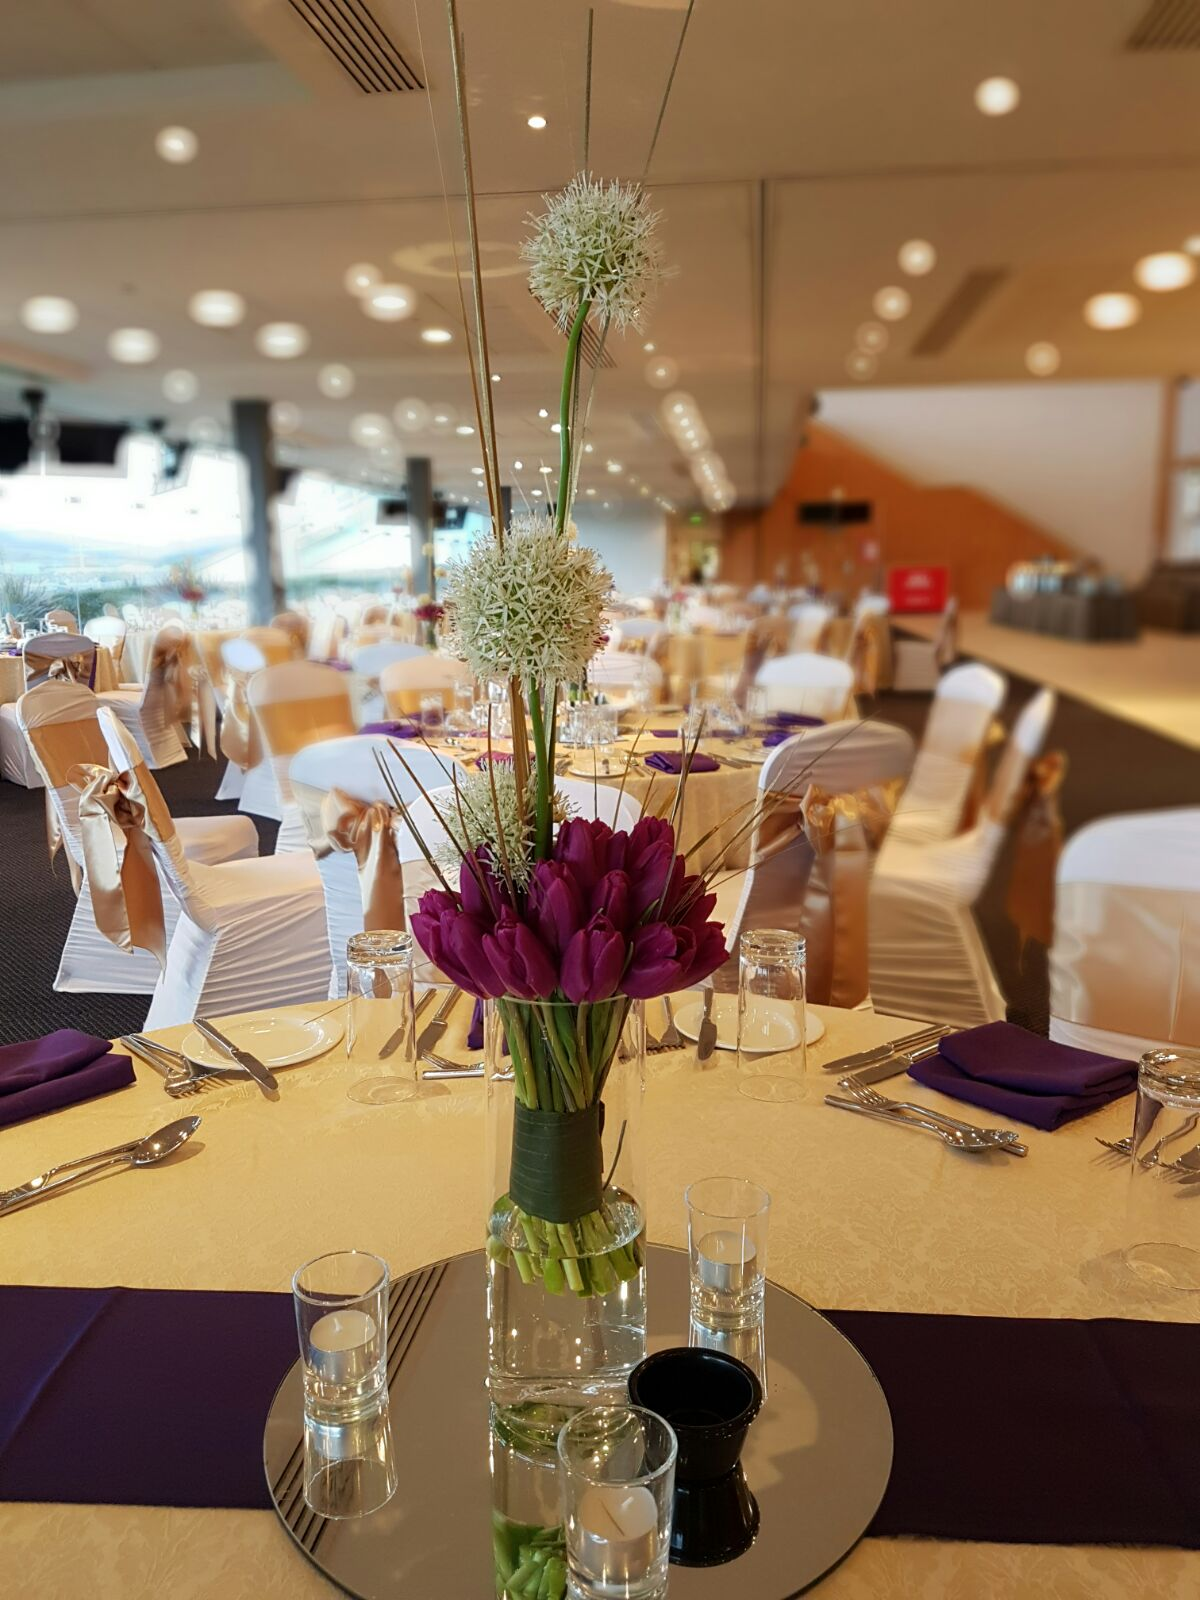 Fitzers Catering banqueting event.jpg